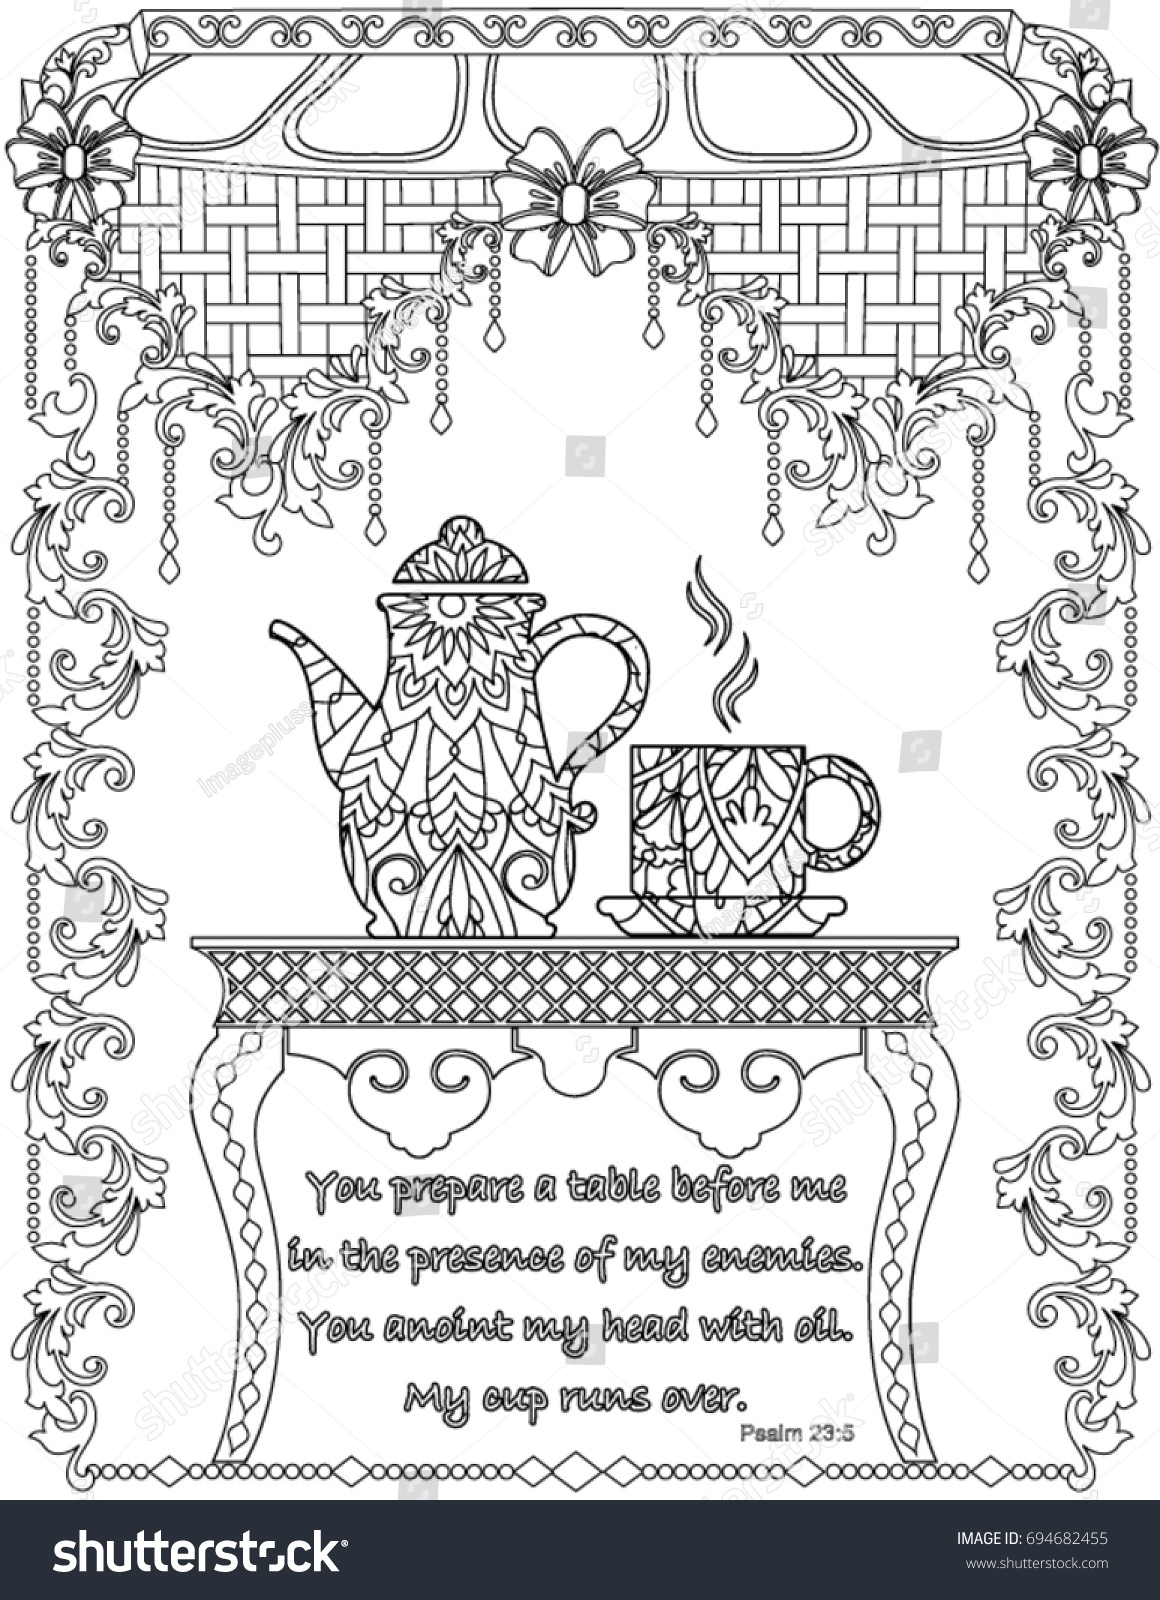 Bible Verses Coloring Book Page Stock Vector Royalty Free